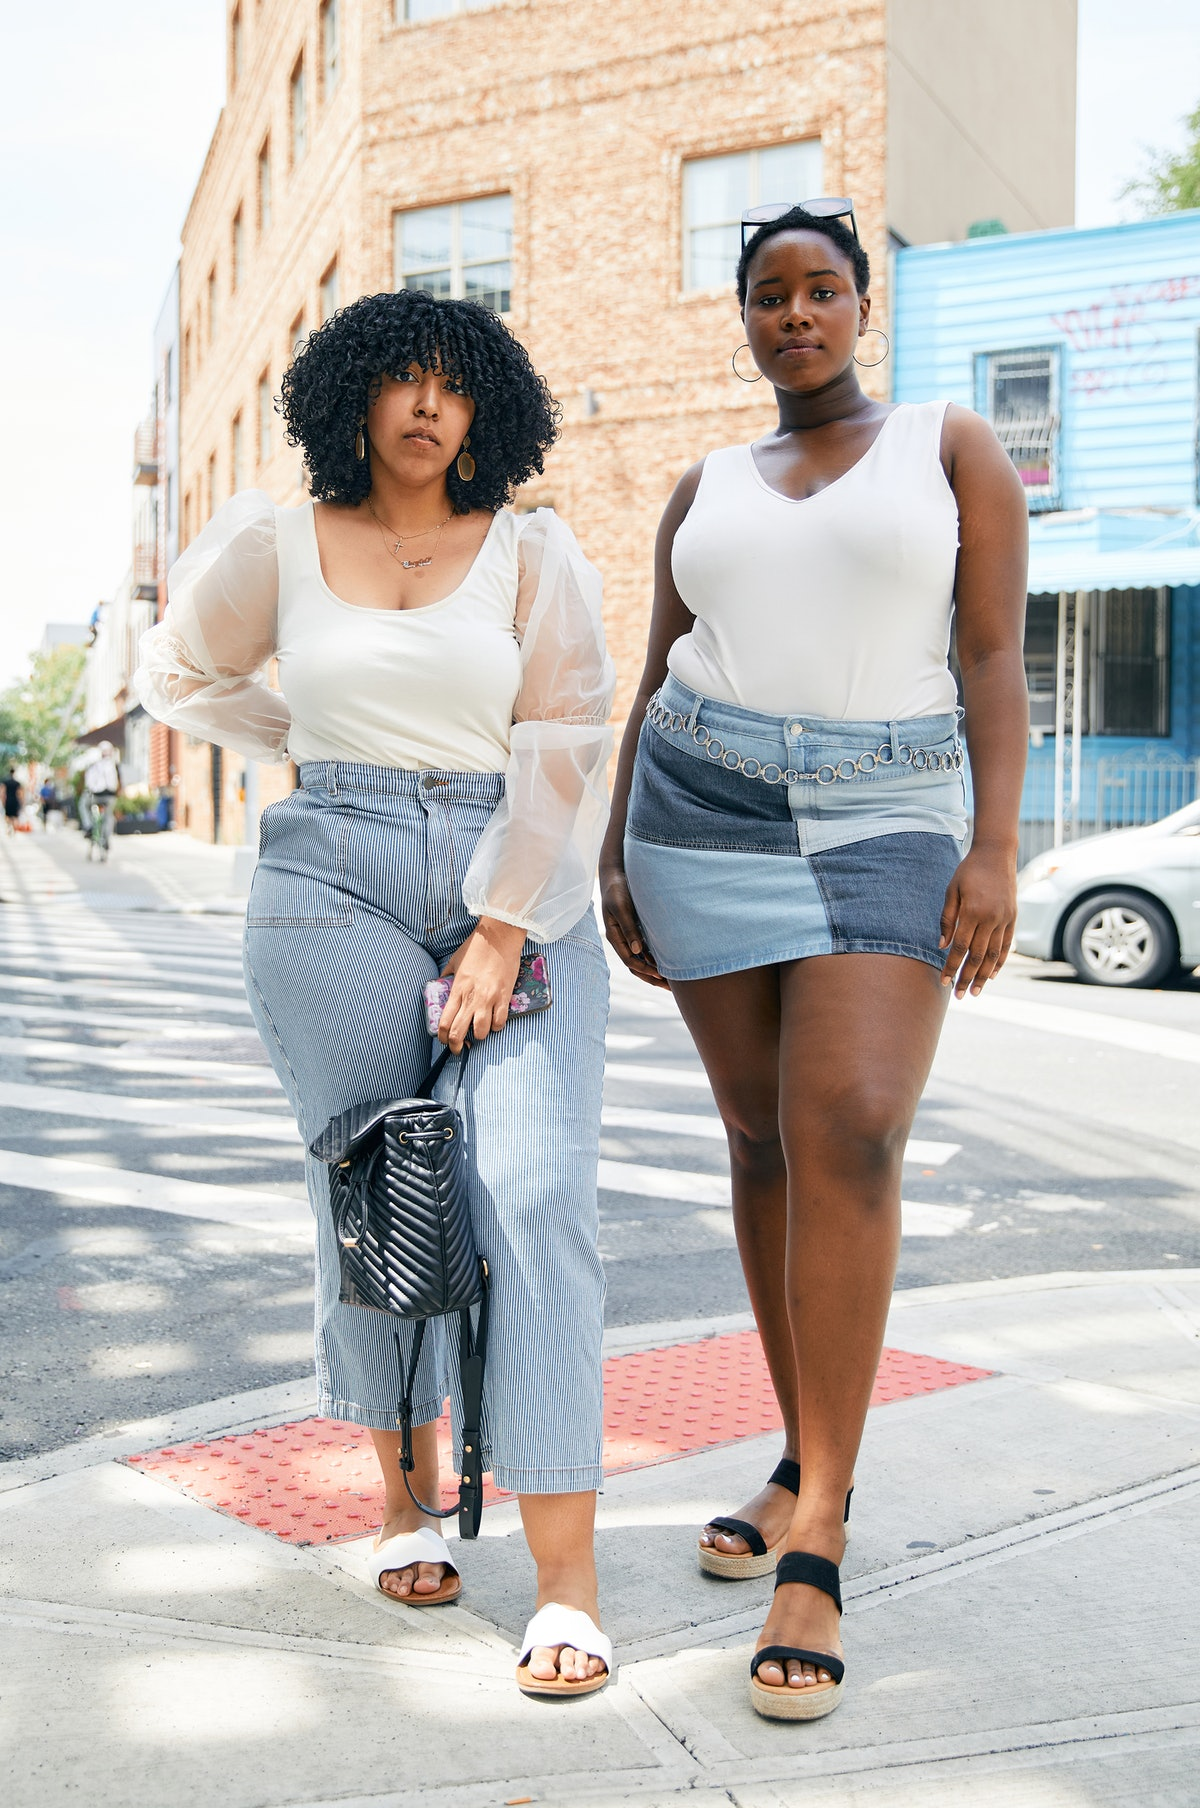 Two plus-size Black women standing on a street corner wearing plus-size white tops and denim bottoms.